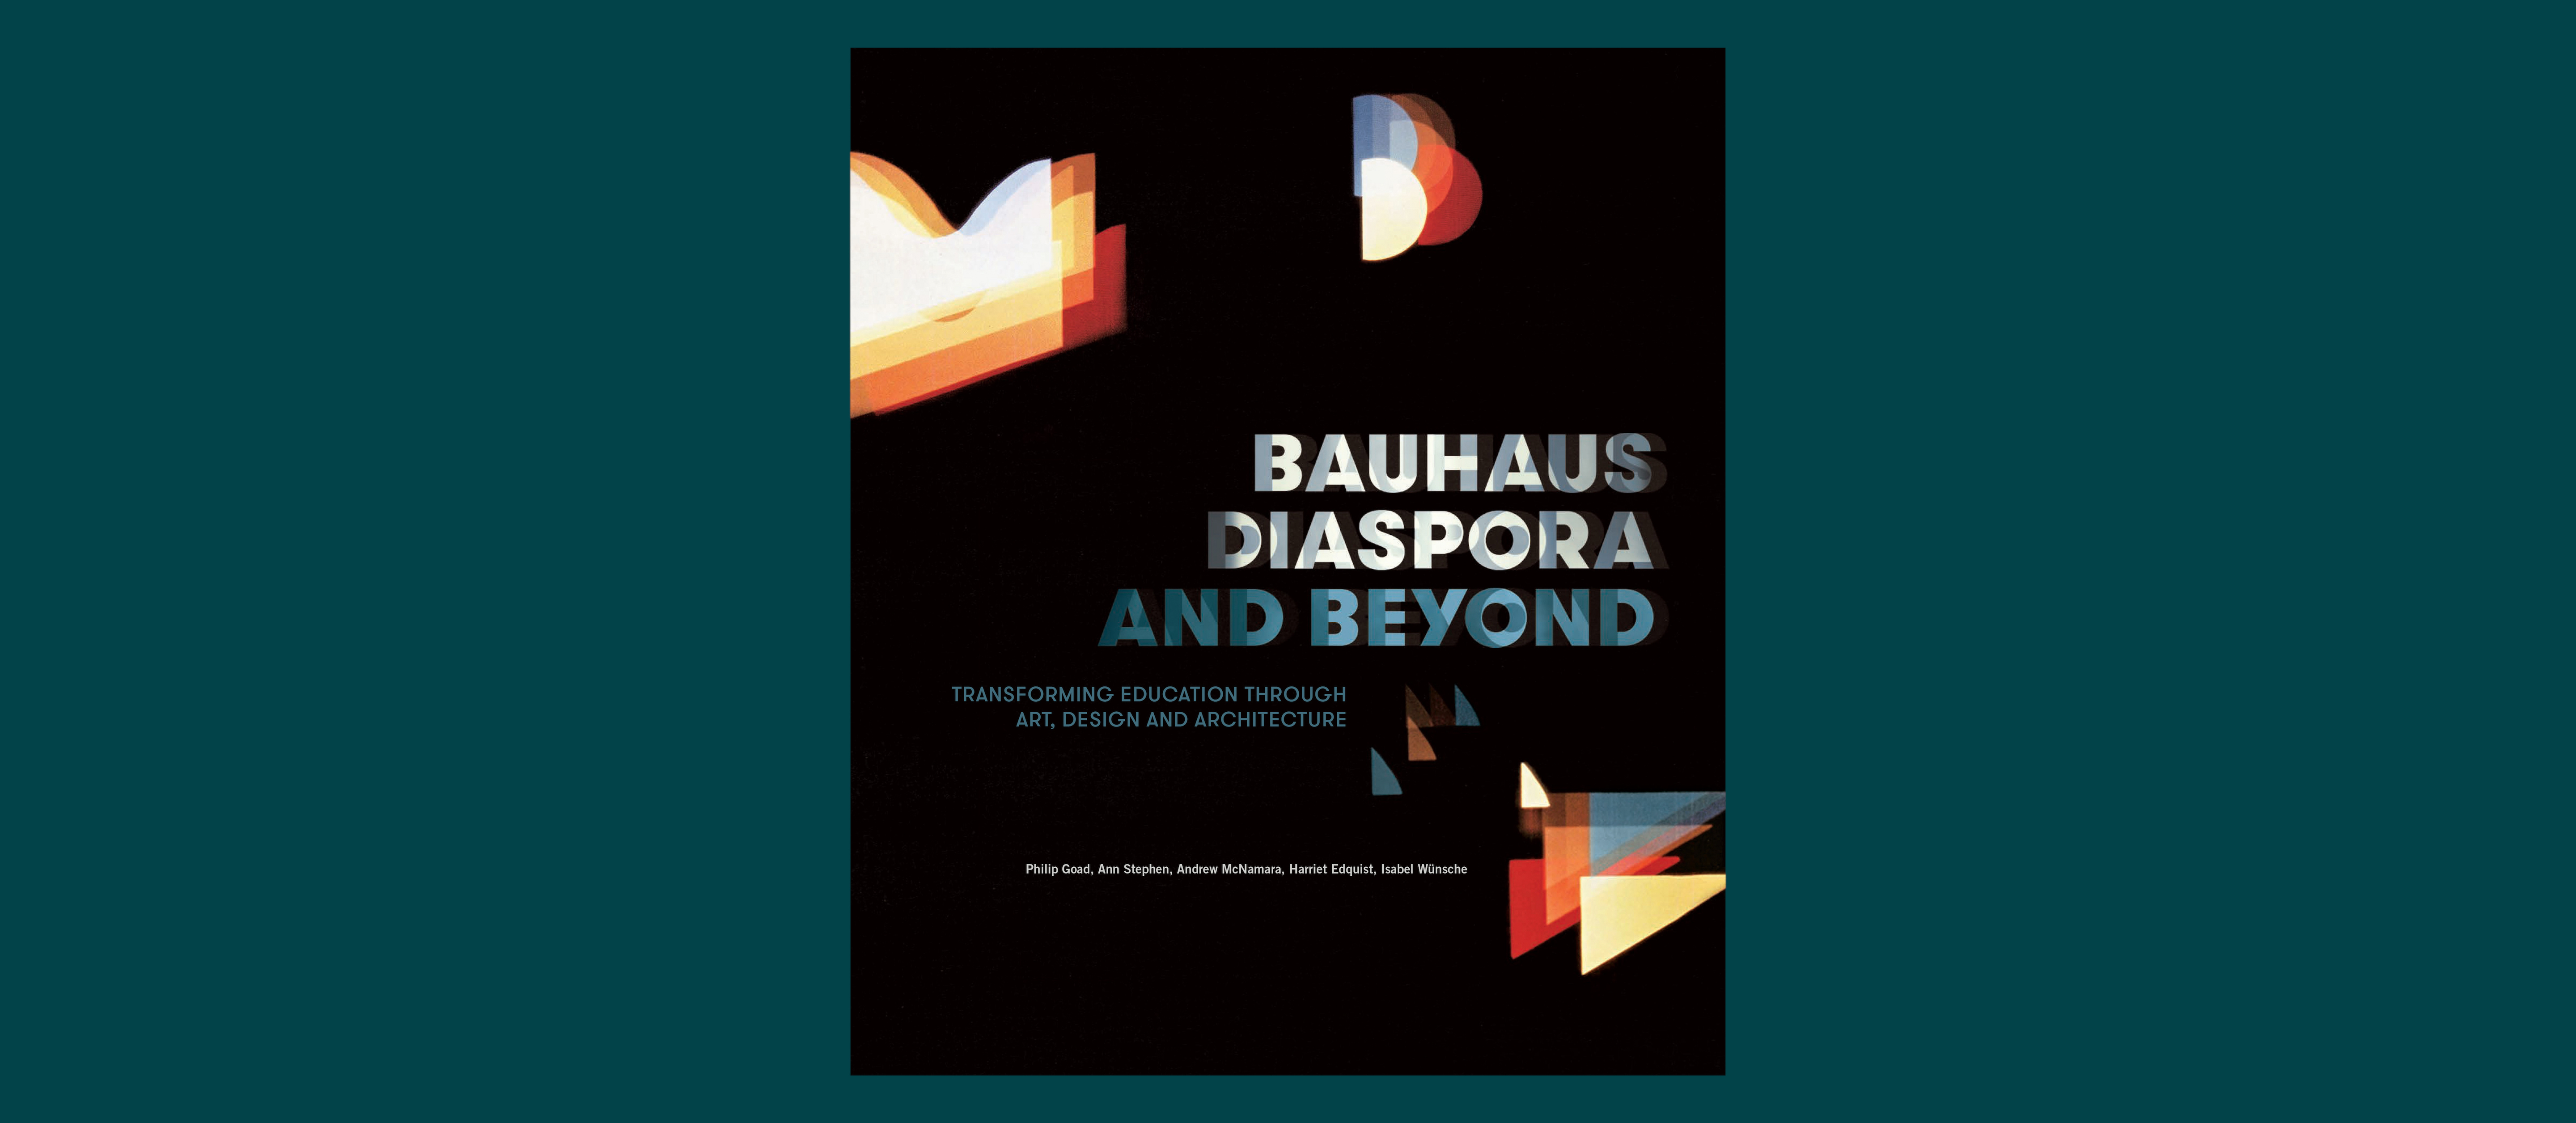 Join us as wecelebratethe centenary of the Bauhaus with a new anthology